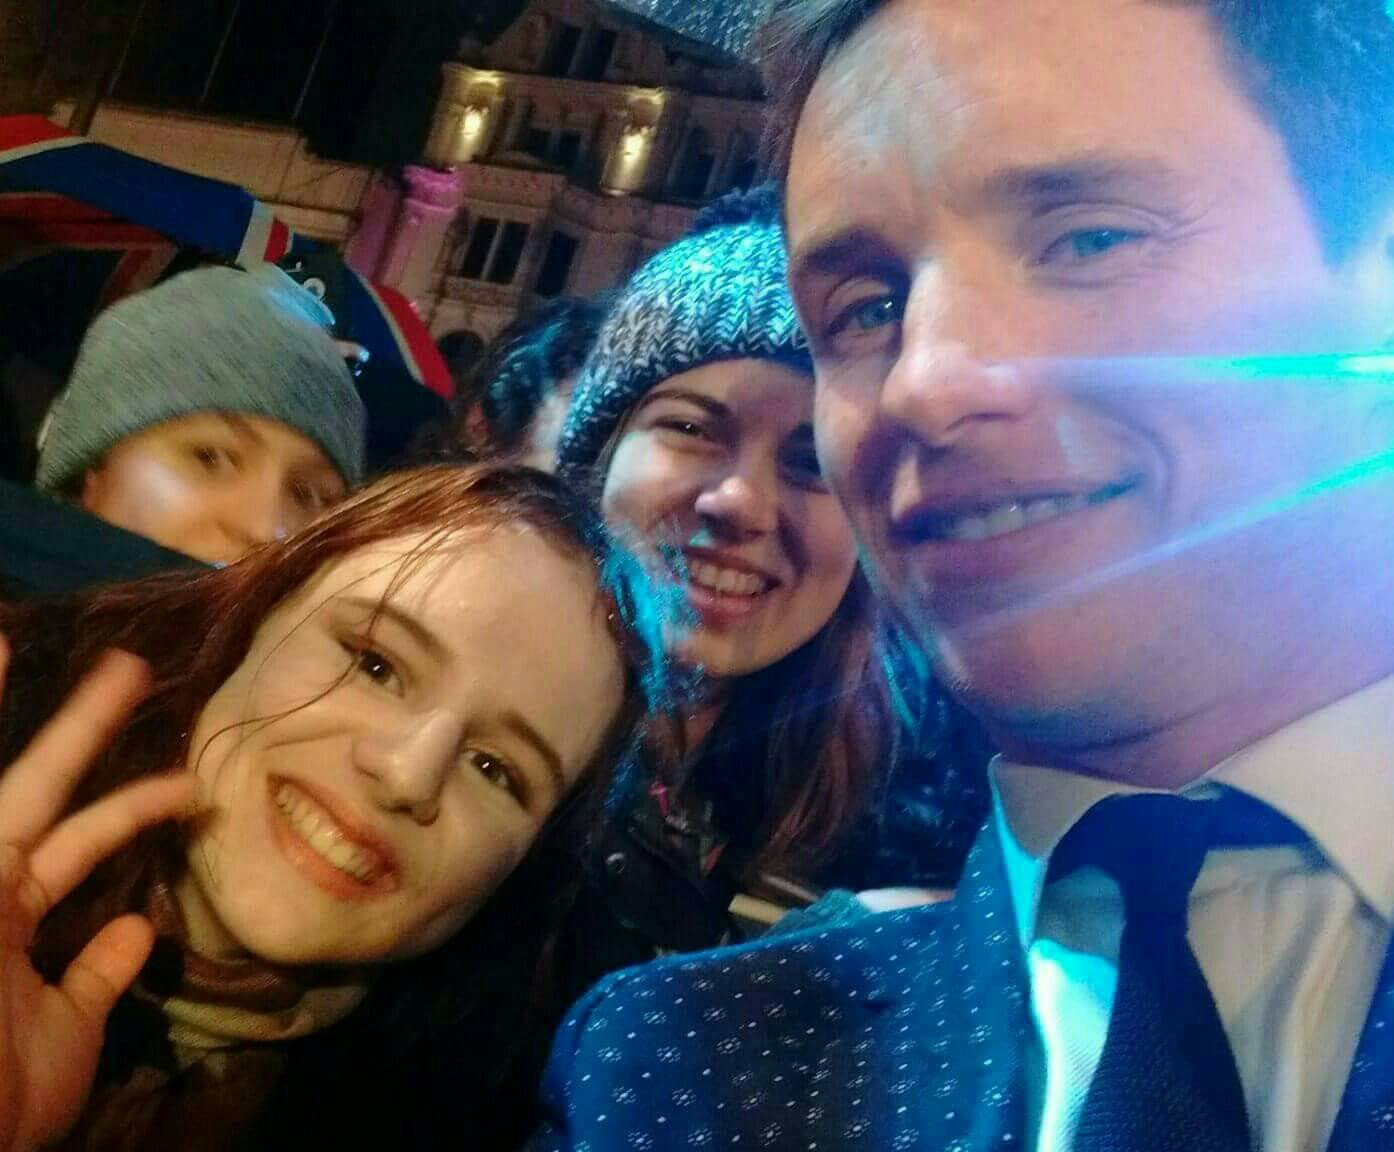 Eddie Redmayne meets fans at the London premiere of fantastic beasts